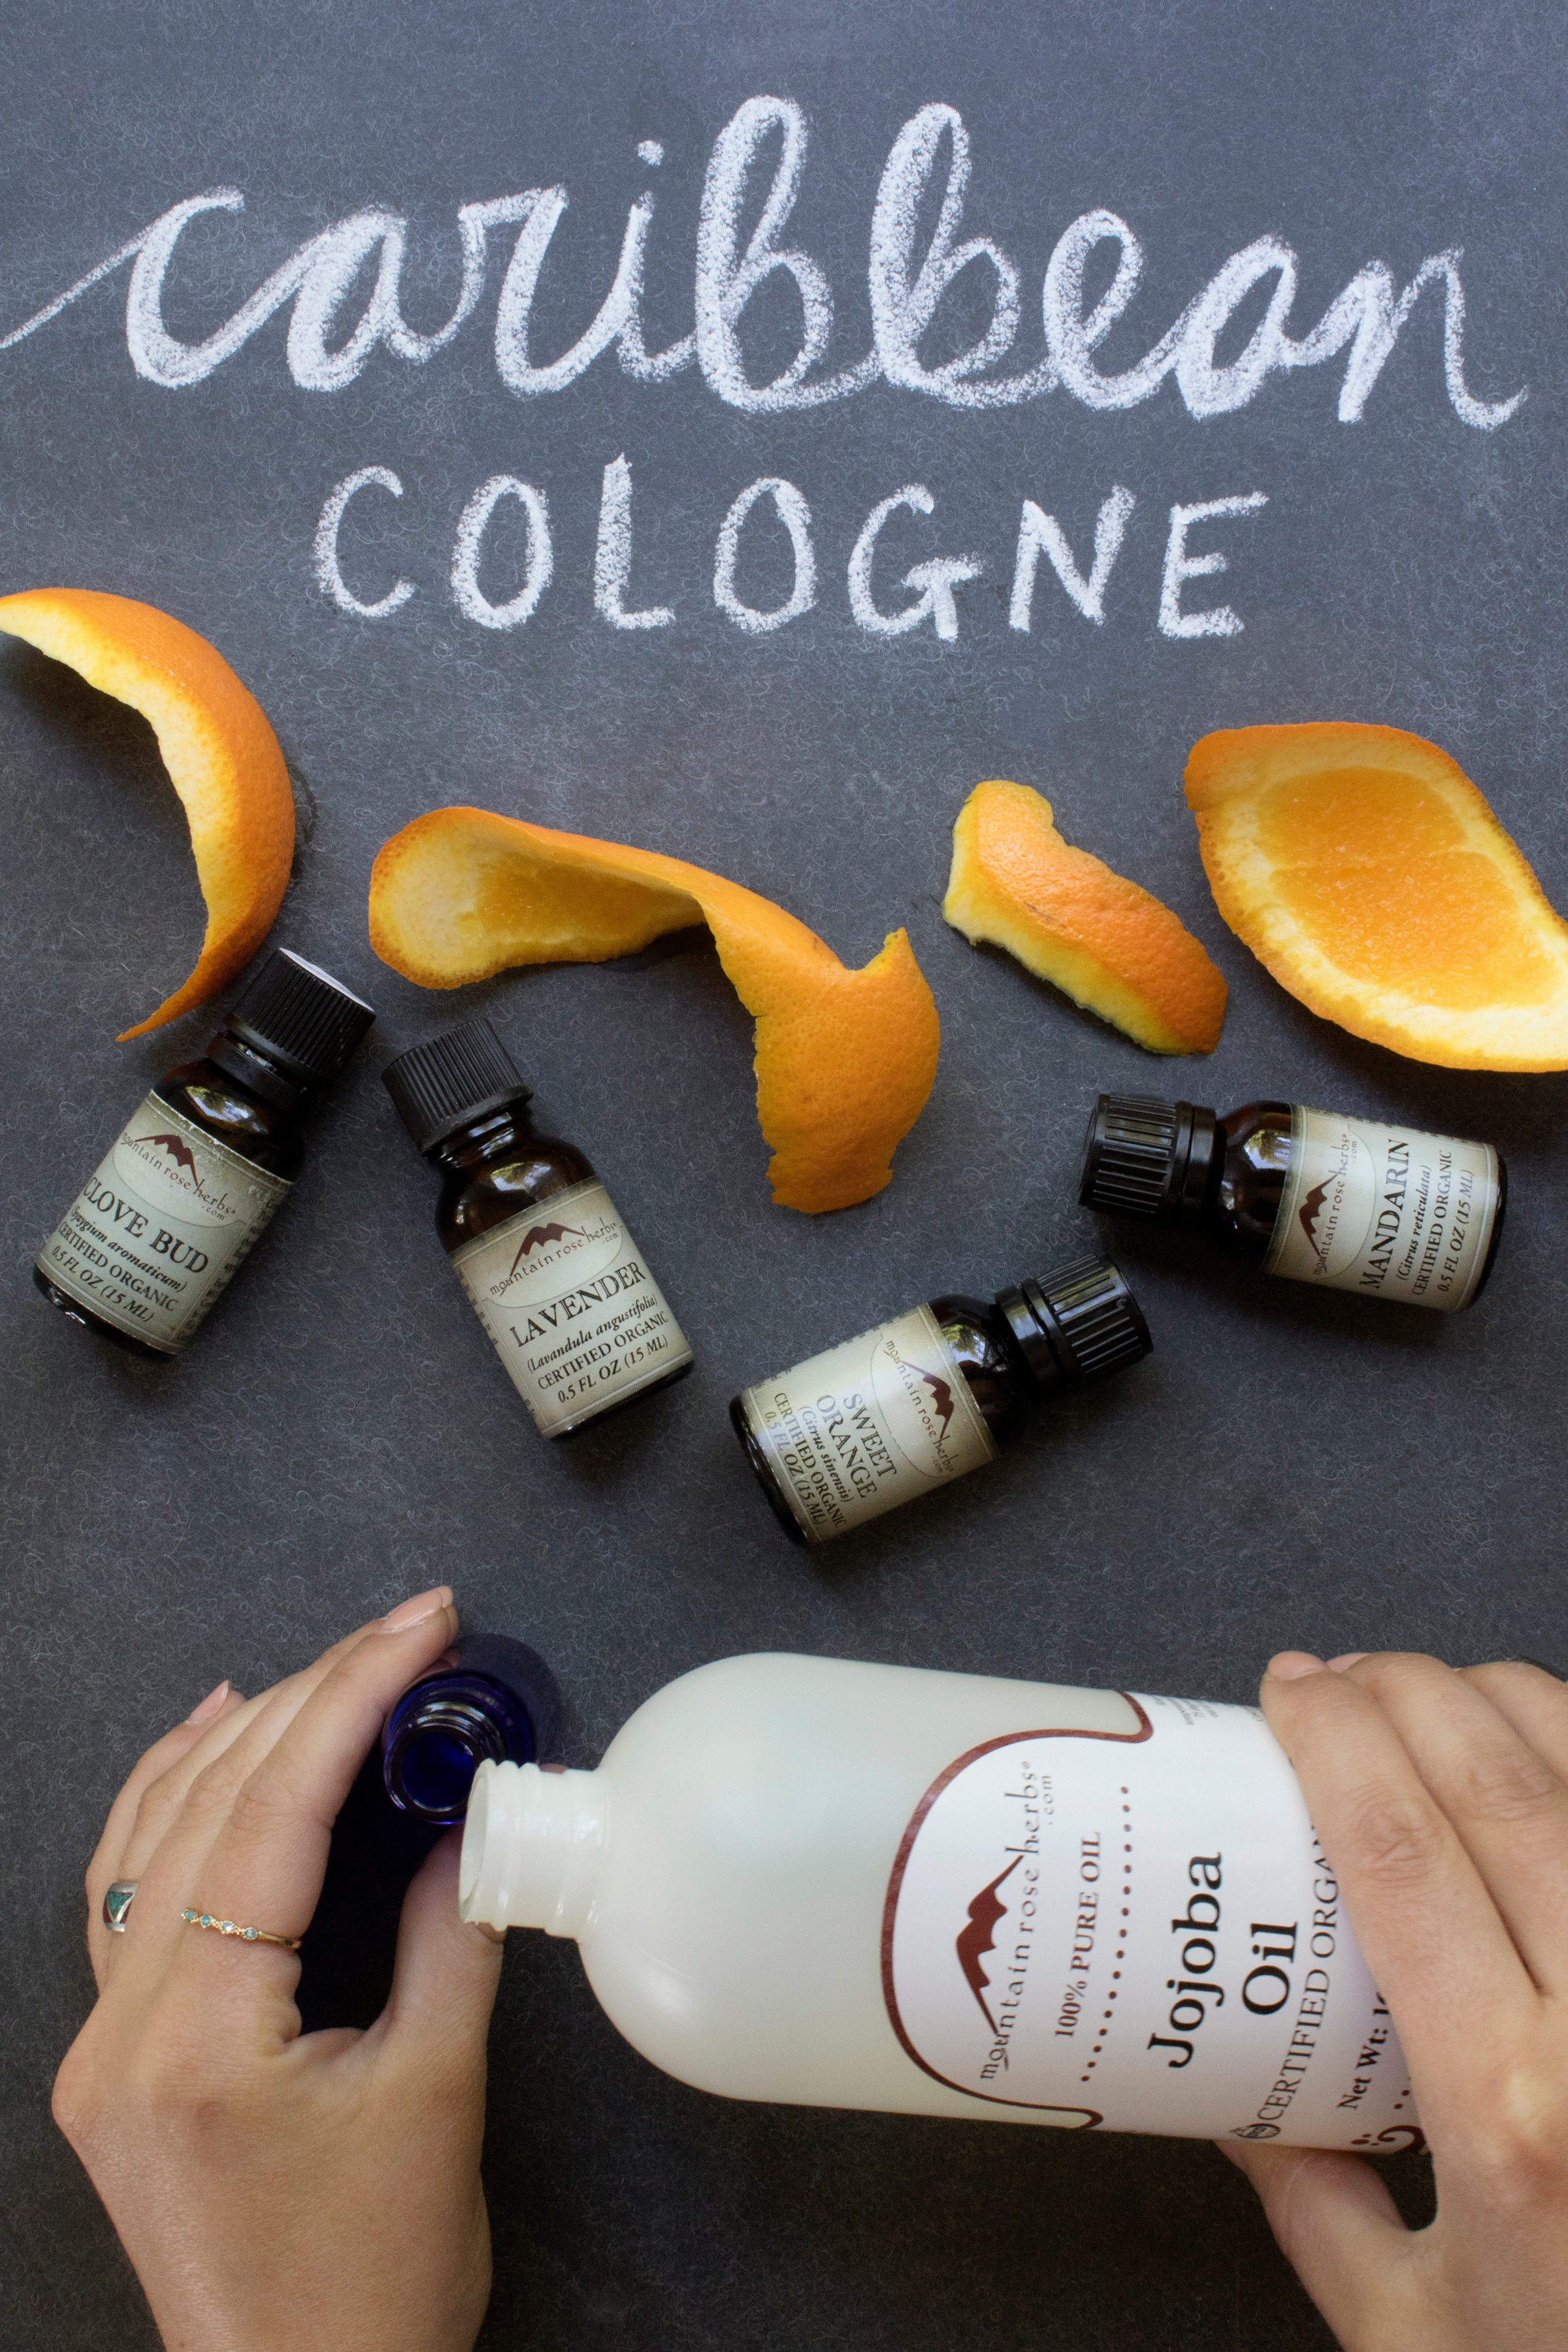 Hands pouring jojoba oil into glass bottle with citrus peels Caribbean Cologne essential oil fragrance recipe